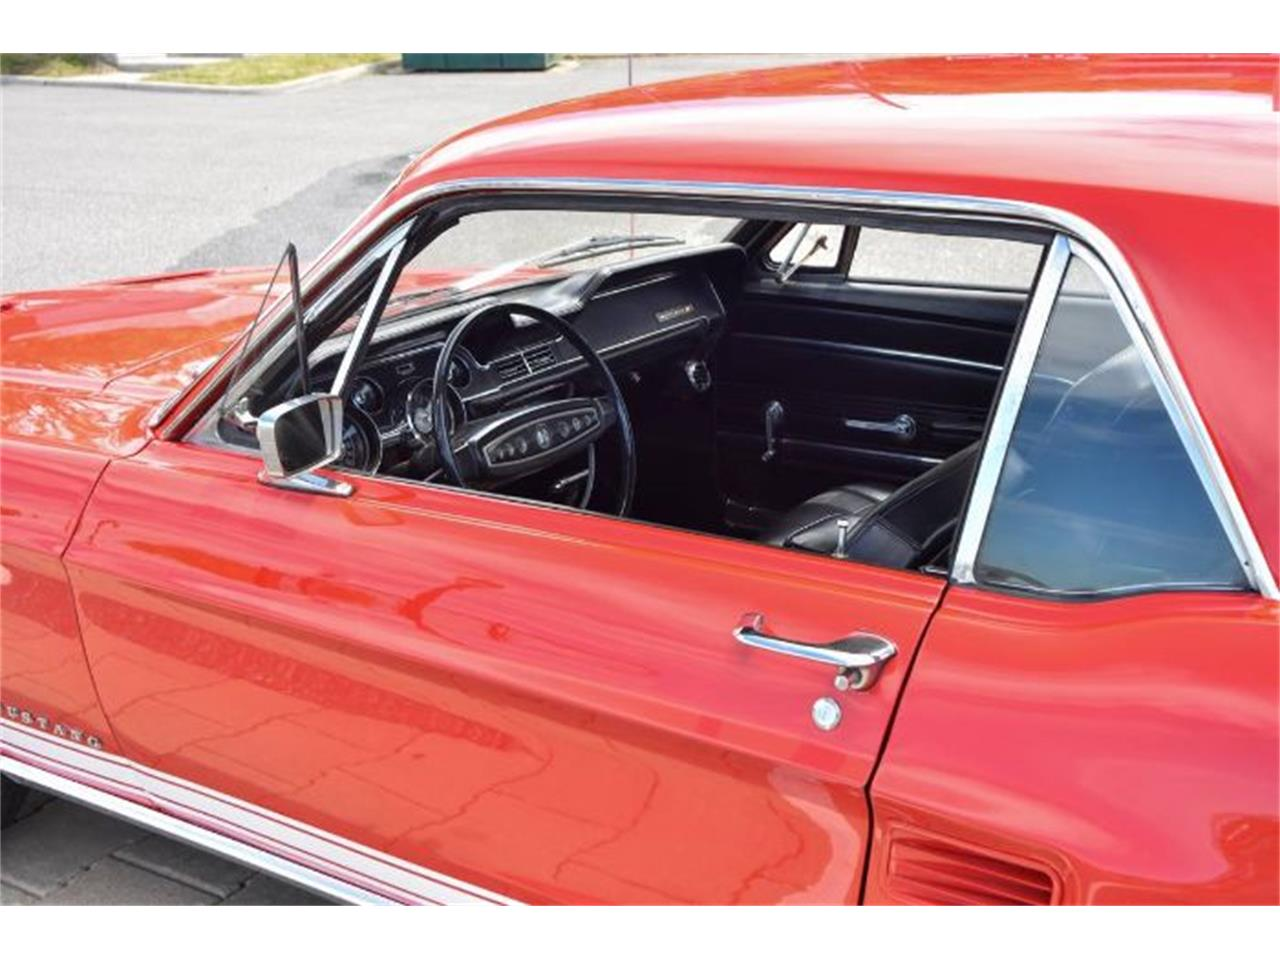 Ford Mustang V8 289 1967 prix tout compris